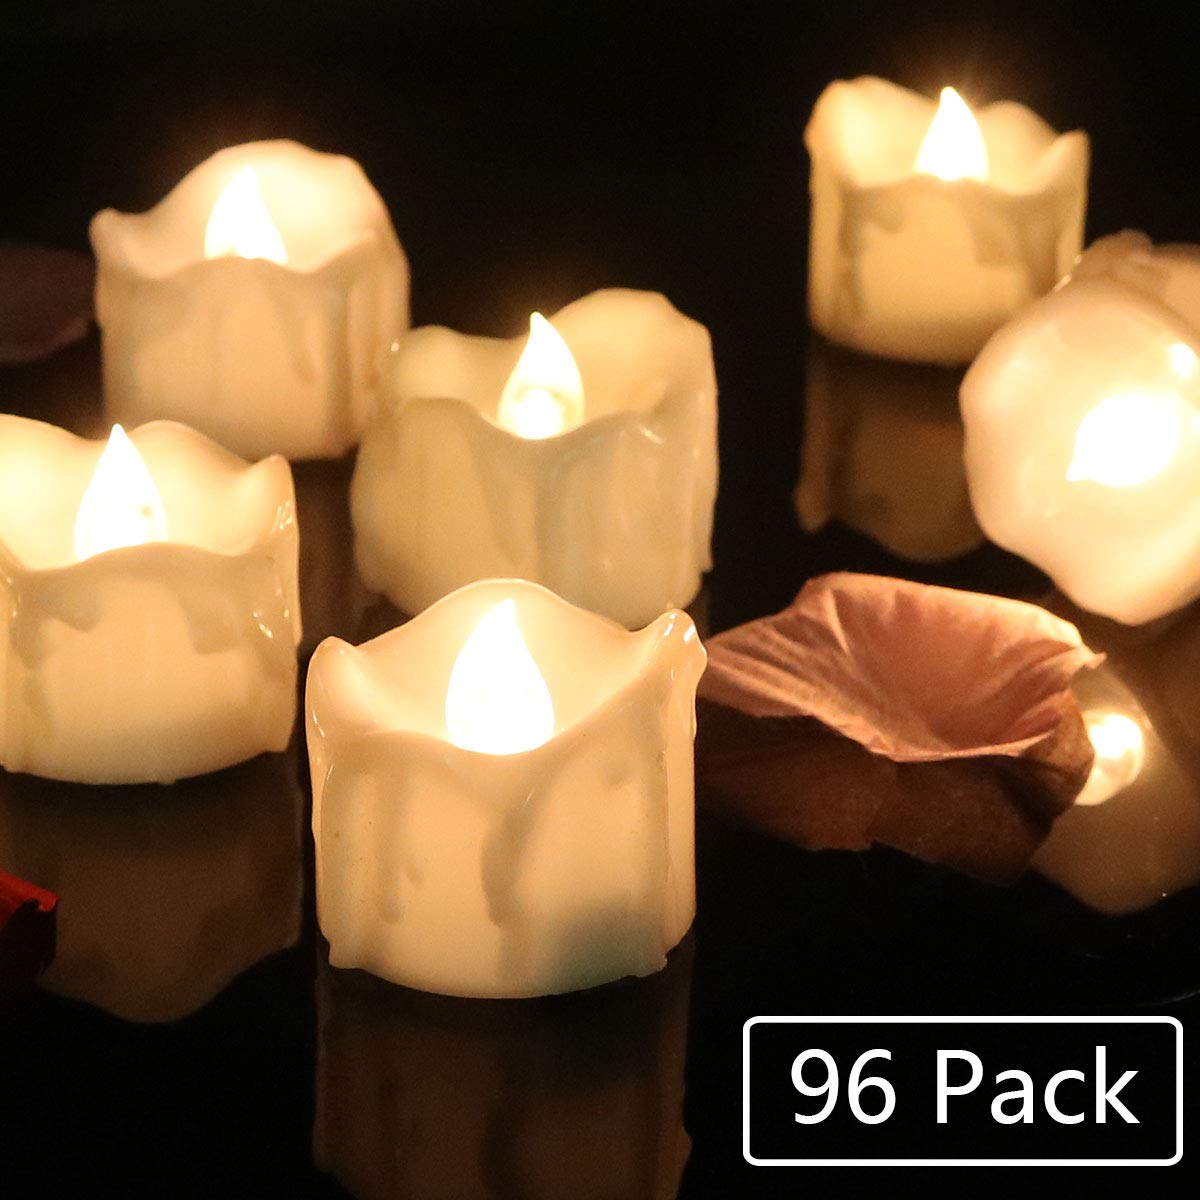 Cozeyat 96pcs Wax-drip Battery Operated Tea Lights, Flameless Votives, Flickering LED Candles for Dinner Table Setting, Centerpiece, Wedding, Anniversary, Birthday Party by Cozeyat